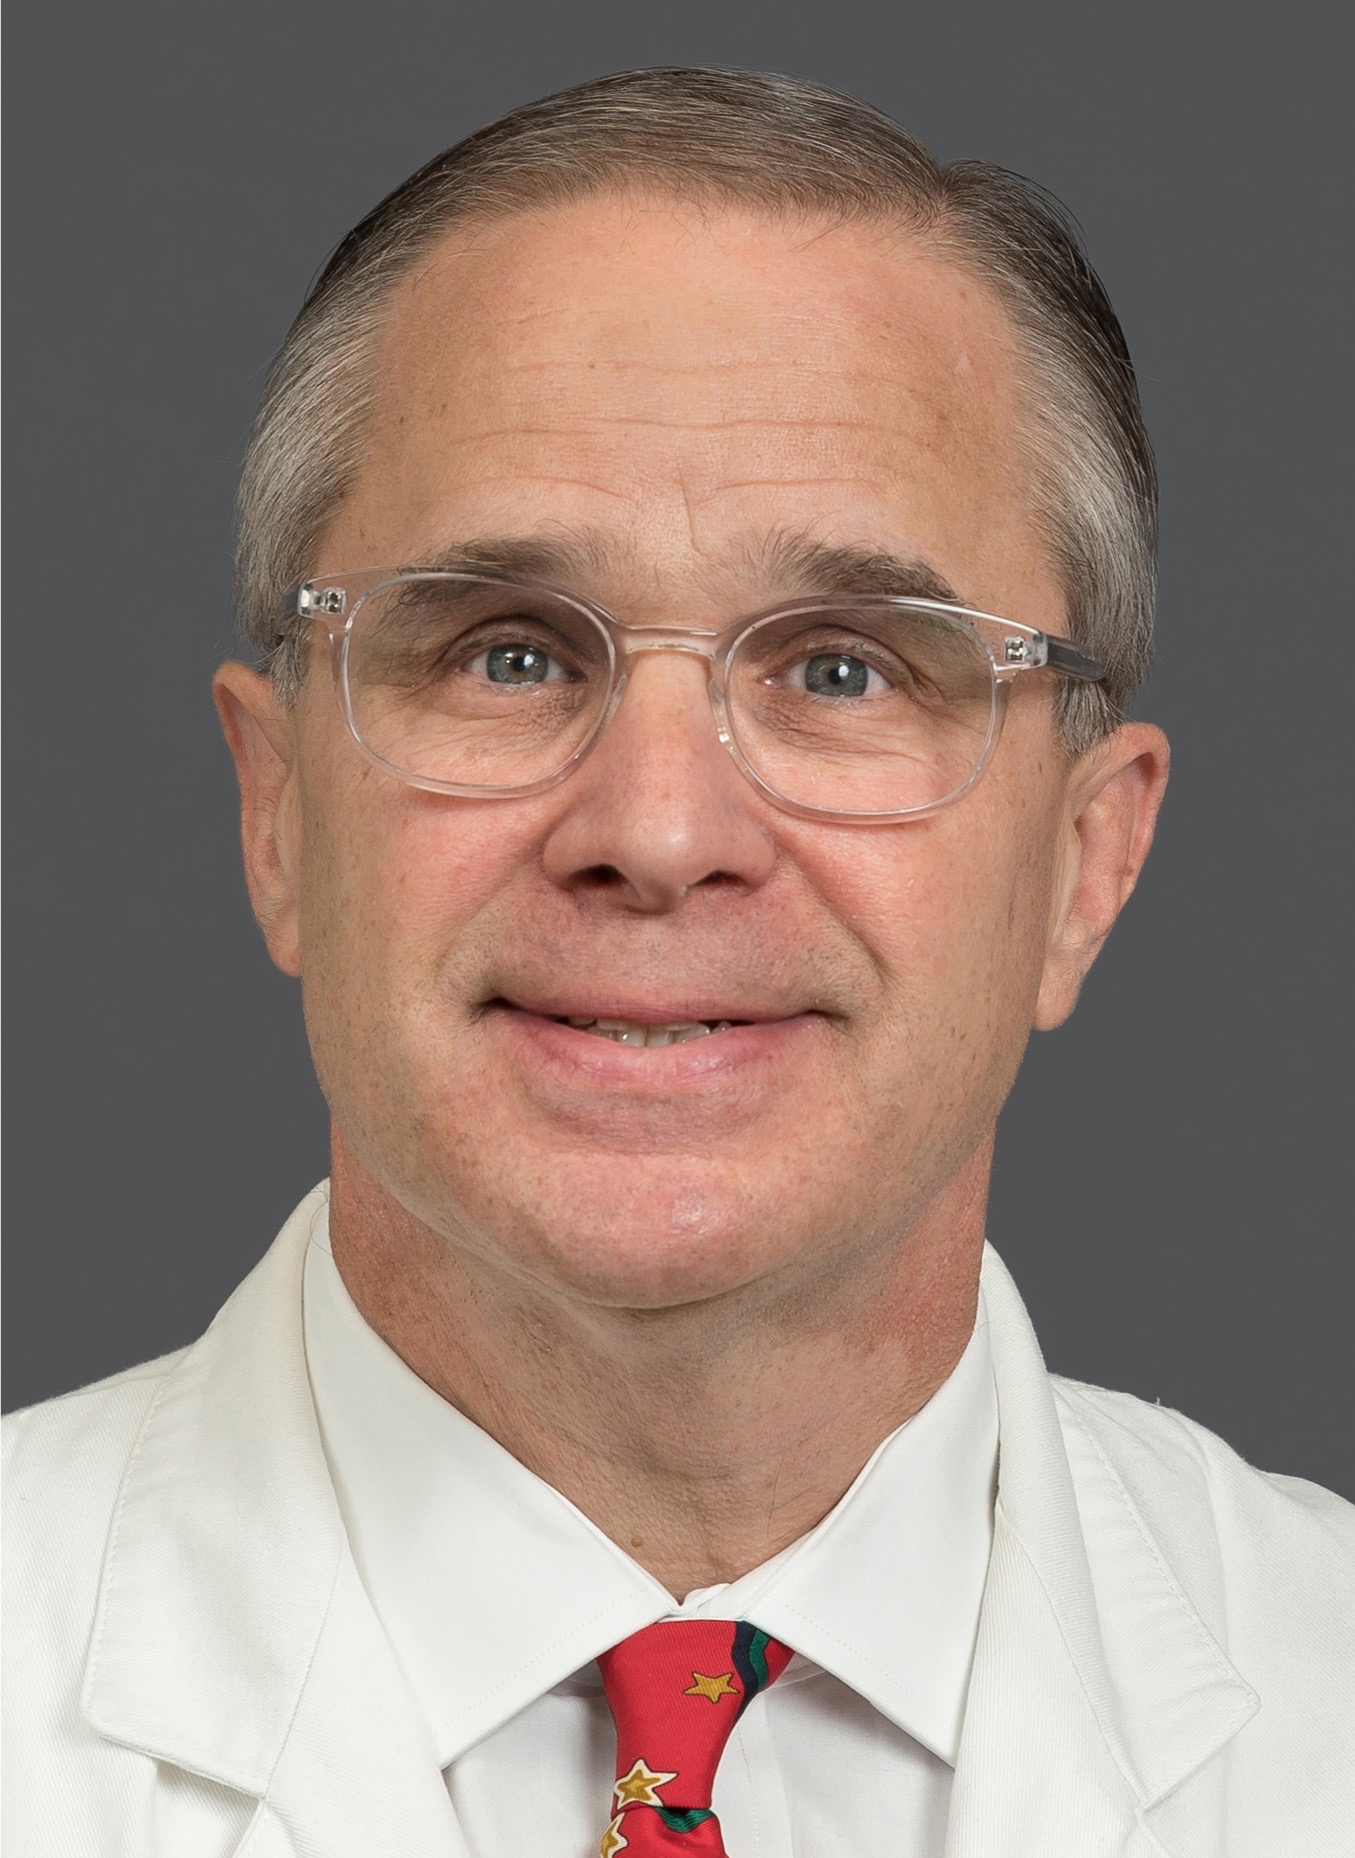 Jeff McGovern, MD